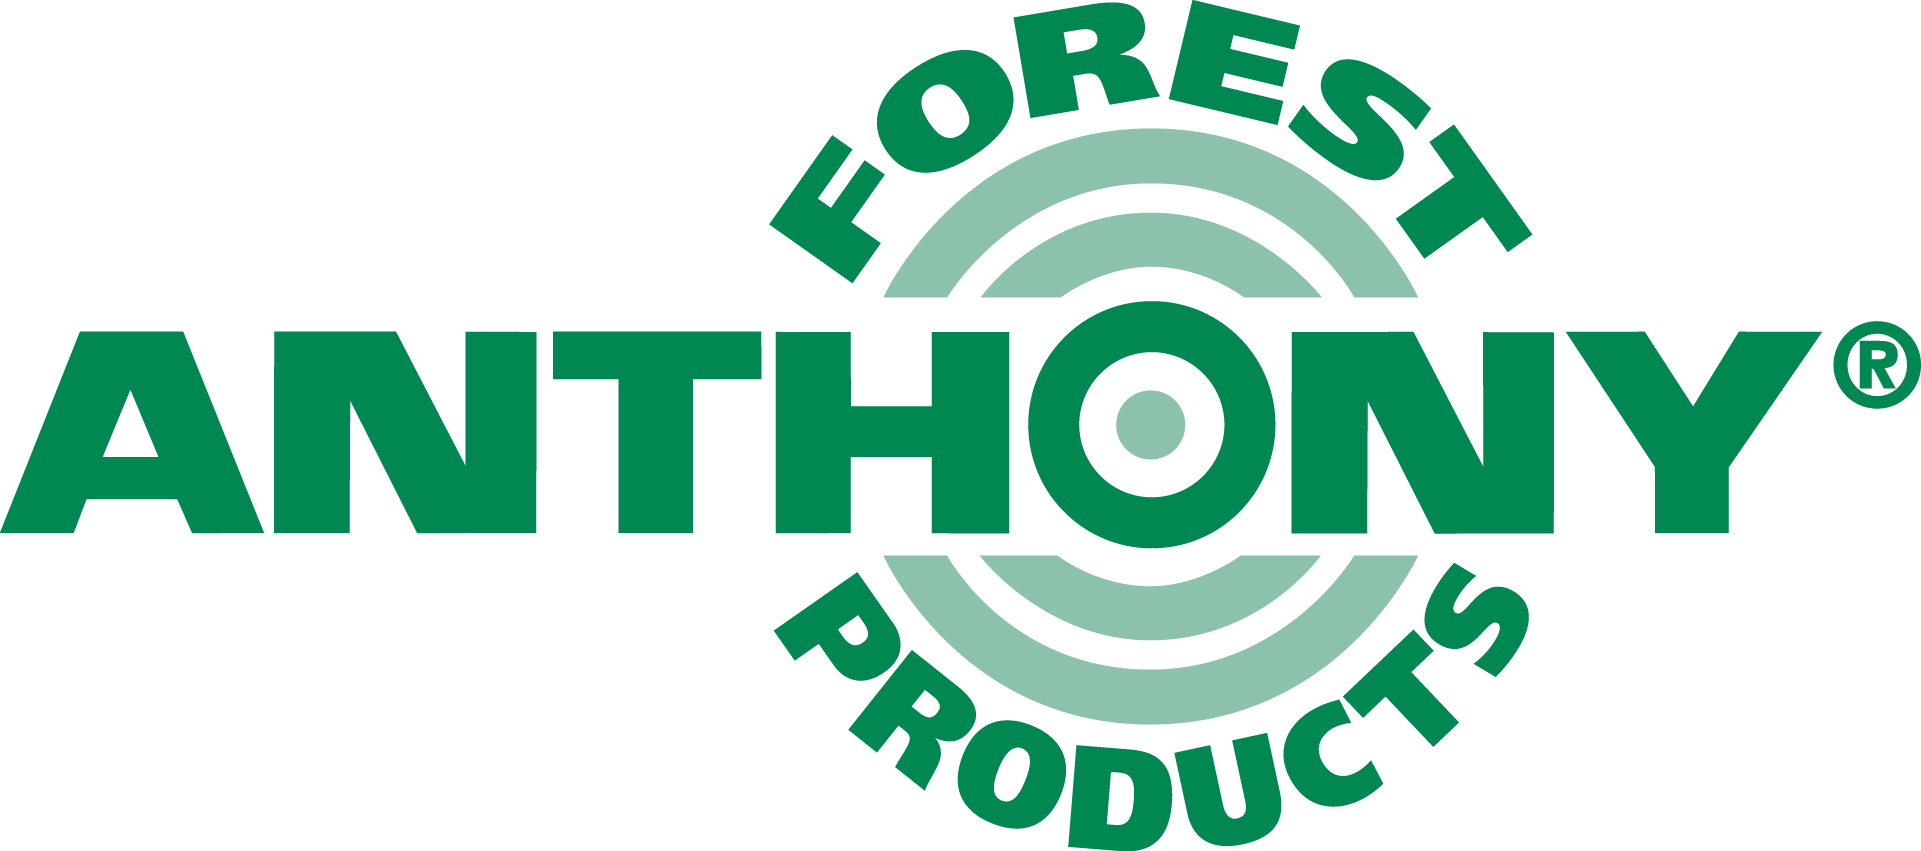 Logo Downloads Anthony Forest Products Co